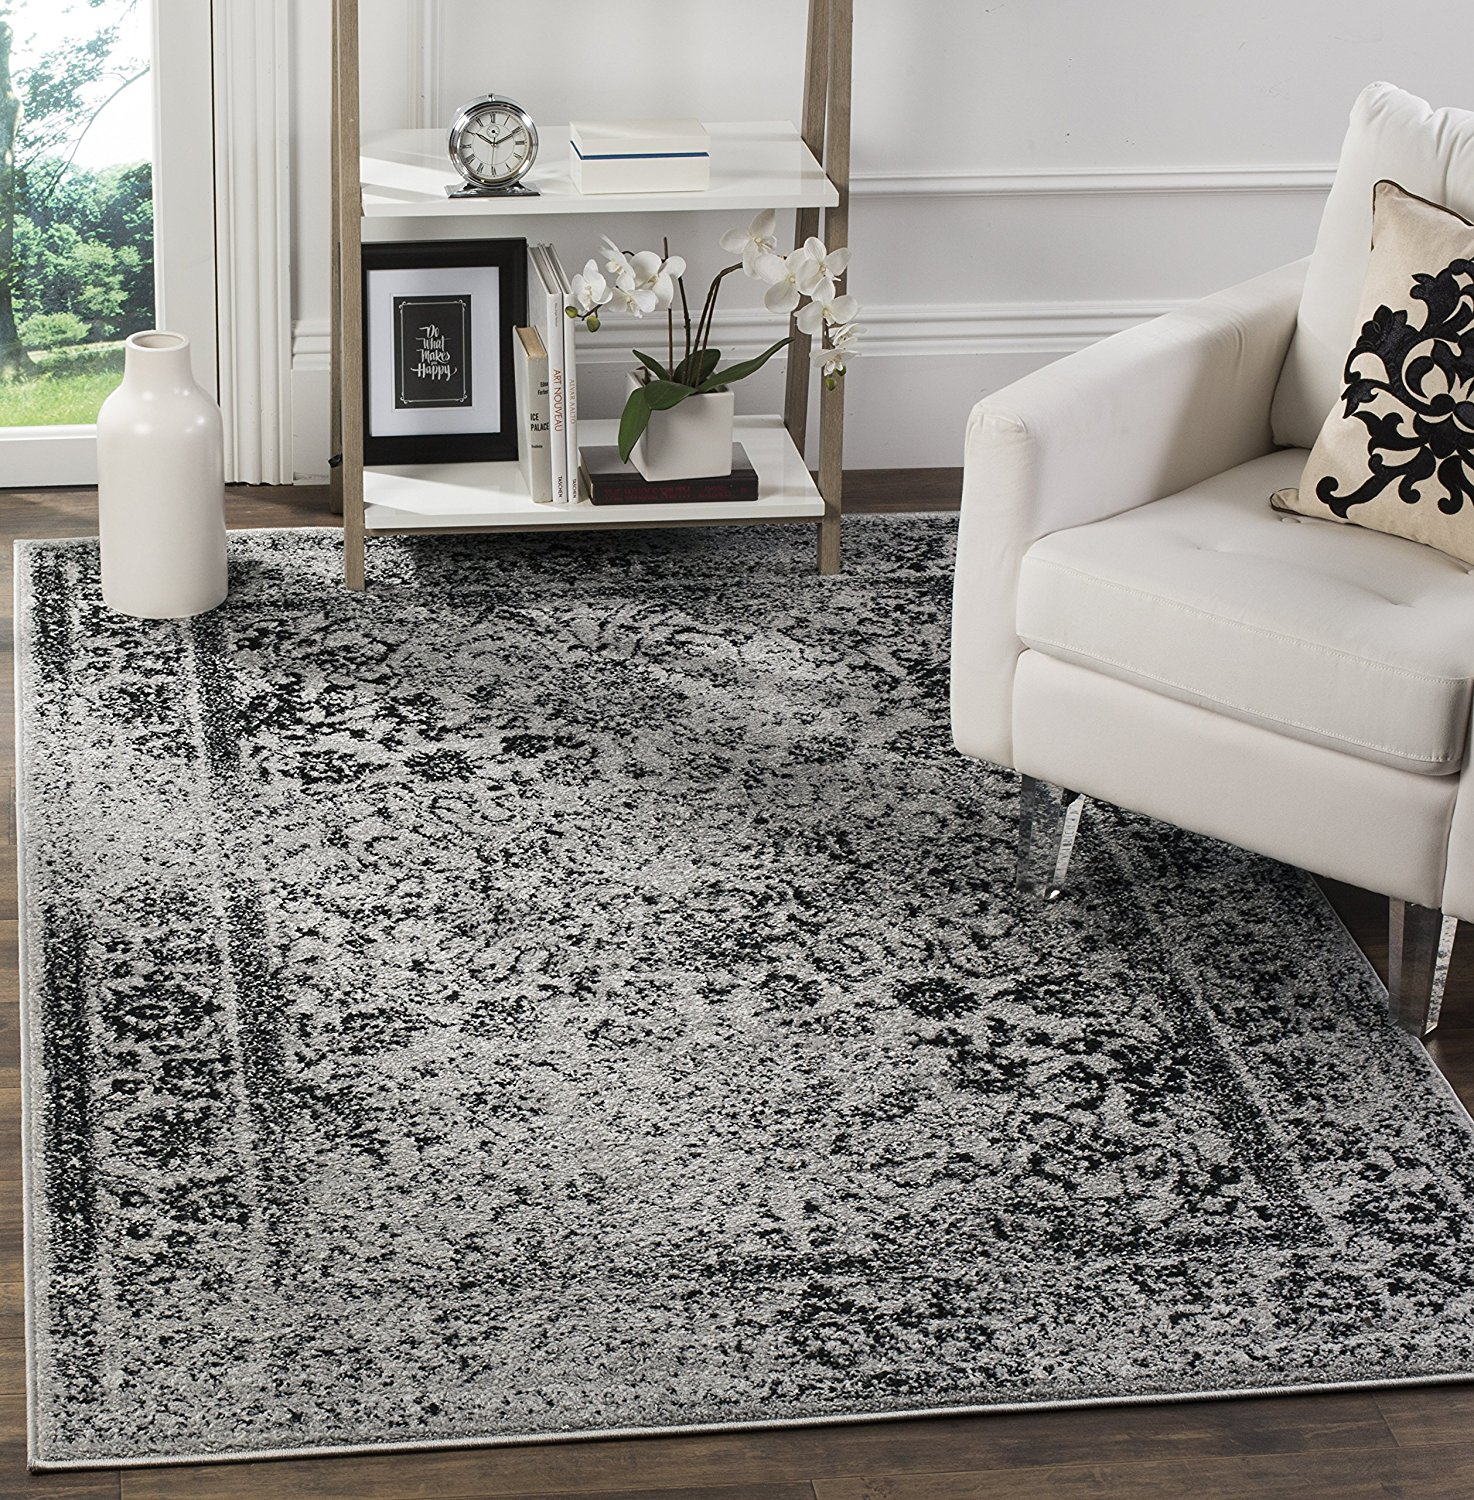 Safavieh Adirondack Collection ADR109B Grey and Black Oriental Vintage Area Rug (4' x 6')